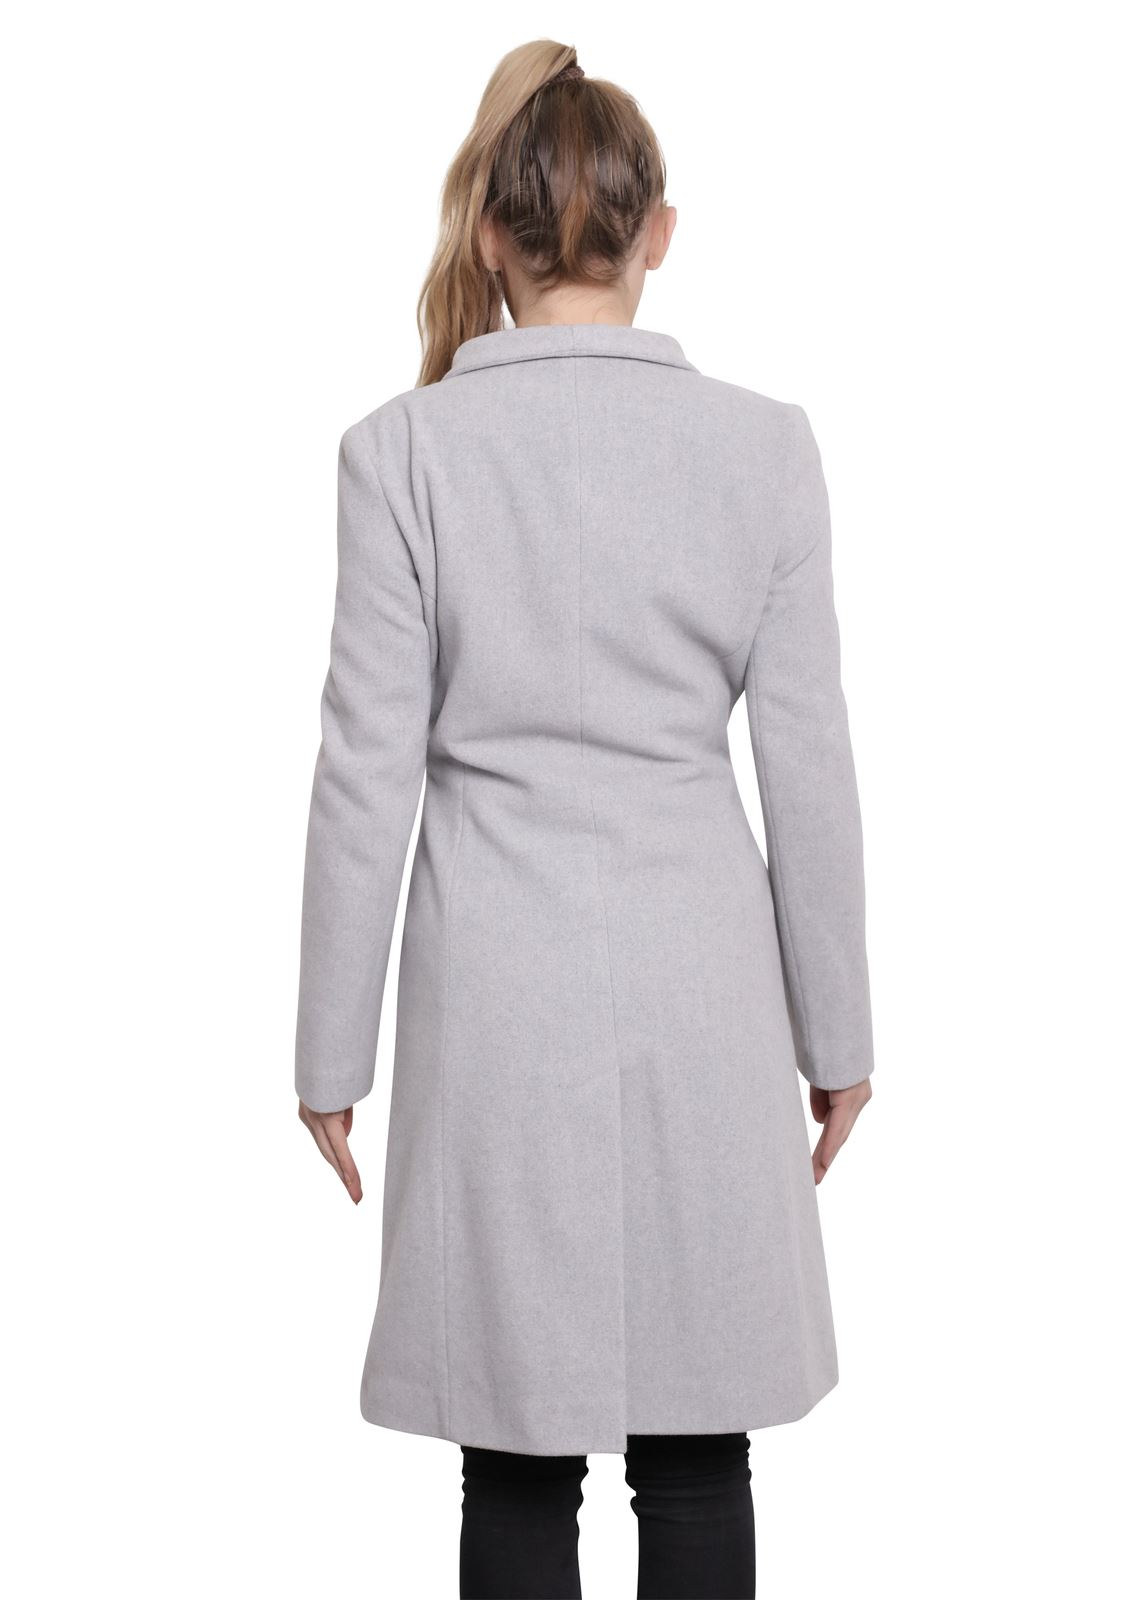 De-La-Creme-Womens-Funnel-Neck-Wool-amp-Cashmere-Blend-Keep-It-Simple-Coat thumbnail 19